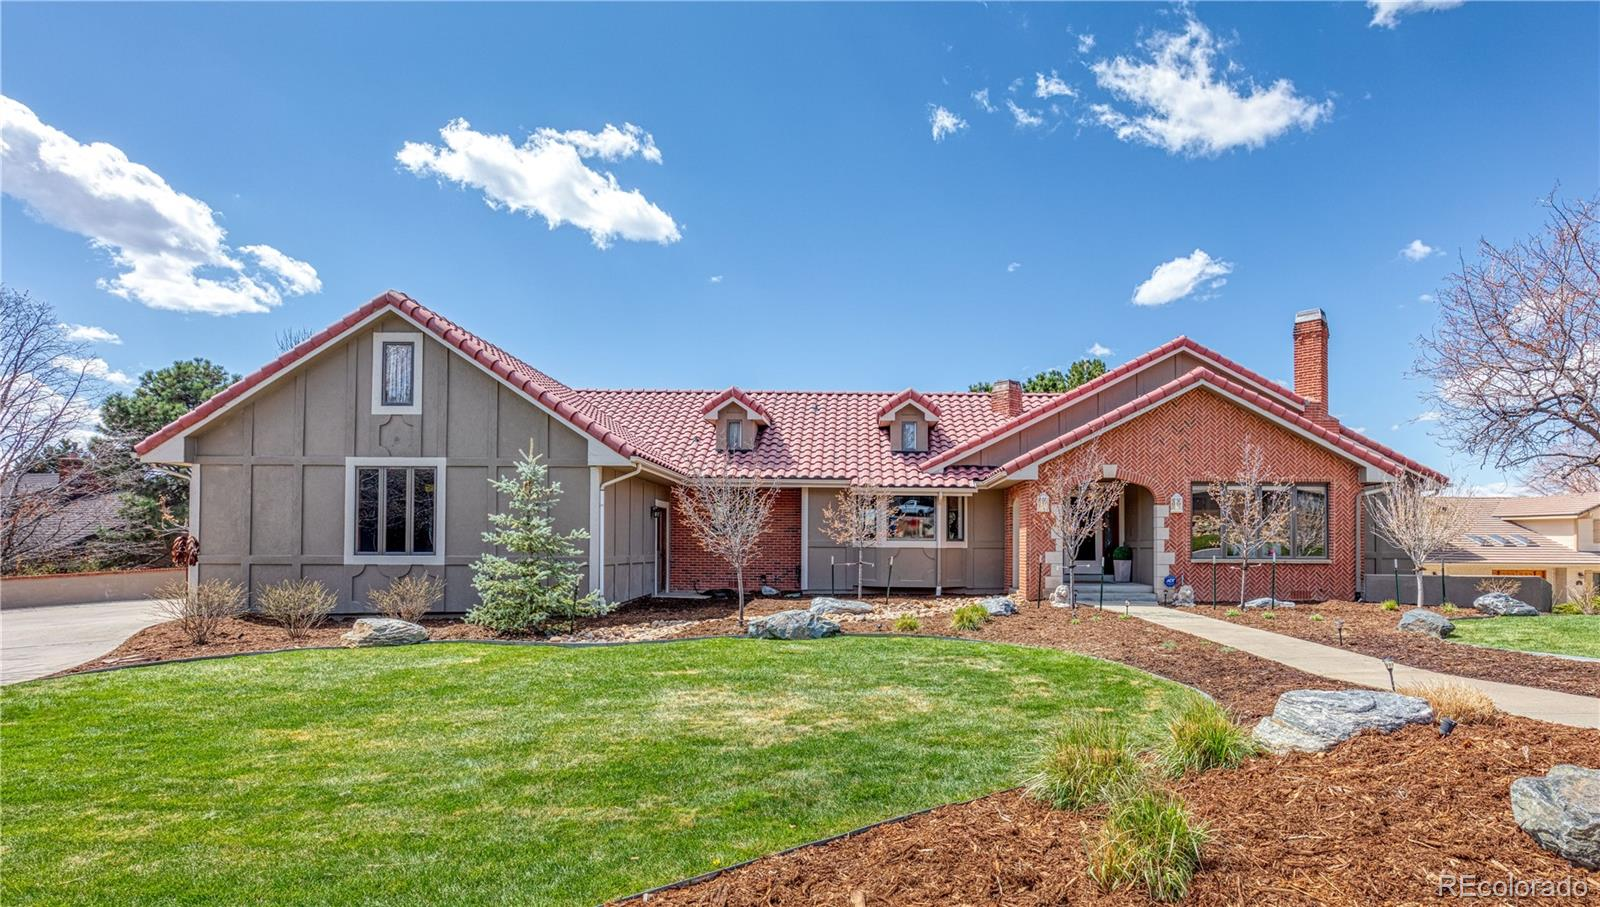 2352 Country Club Loop Property Photo - Westminster, CO real estate listing